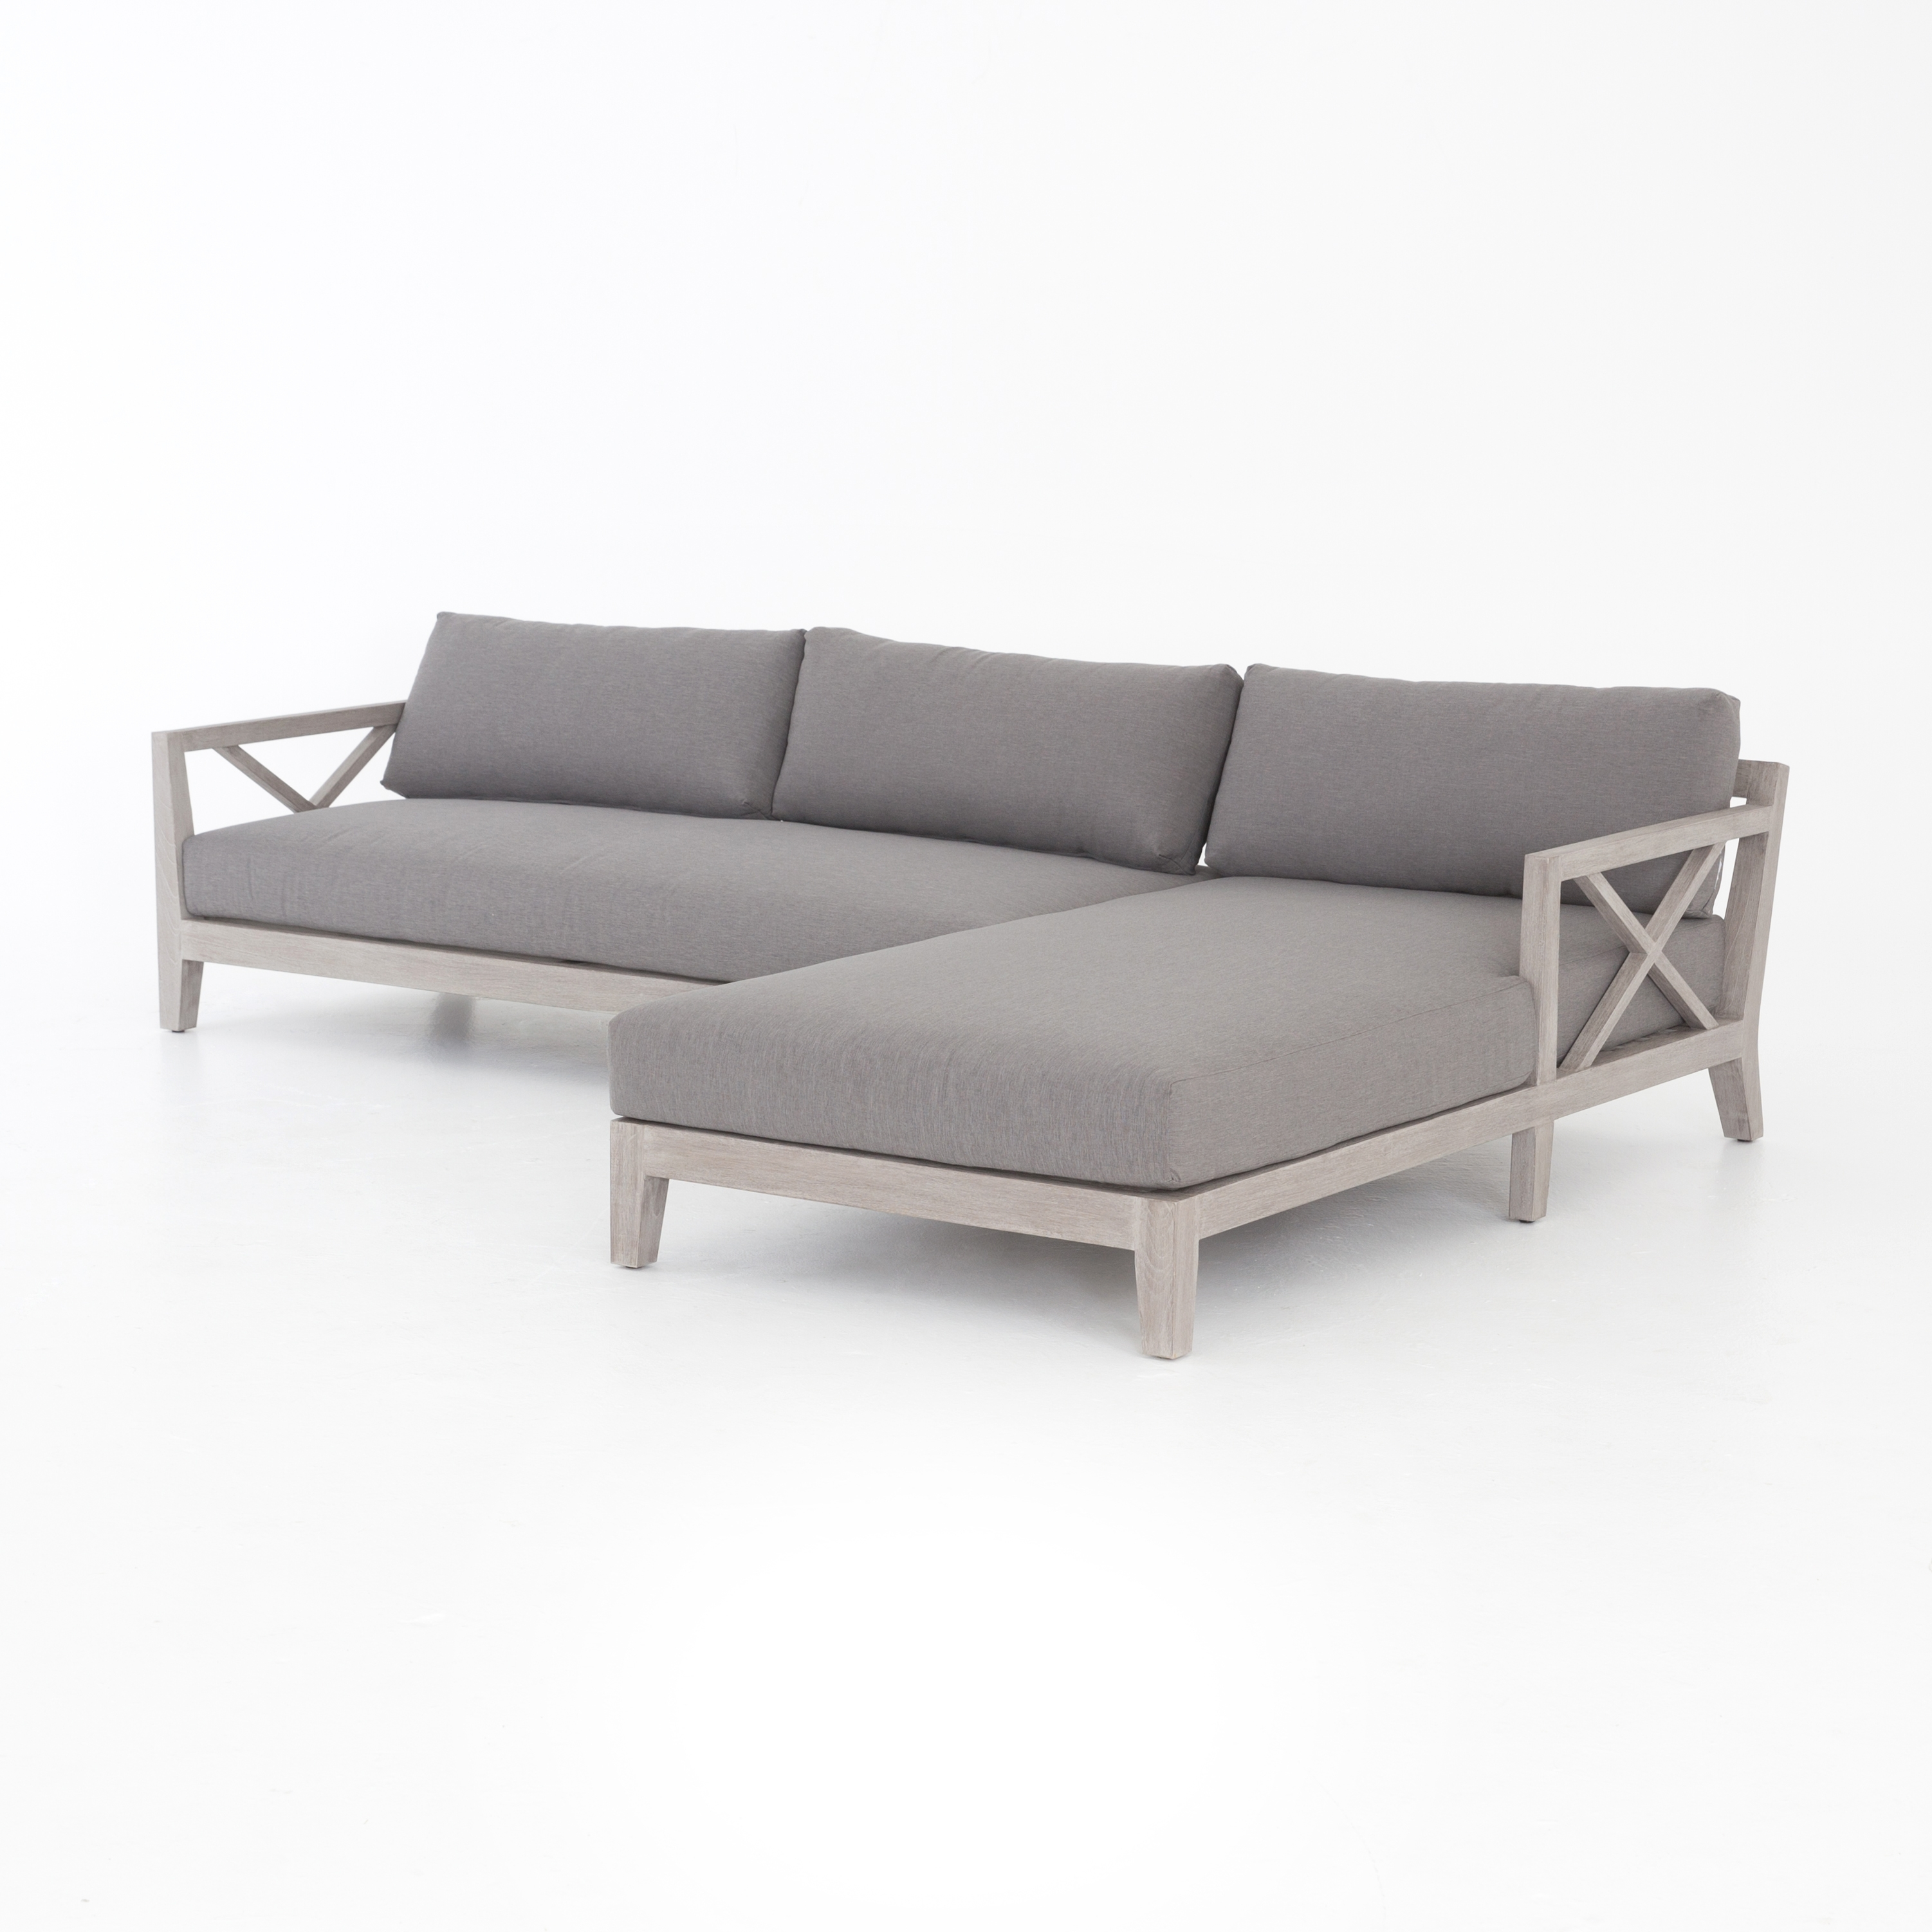 Huntington 2-Pc Outdoor Sectional Raf Chaise • Q&c Home intended for Cosmos Grey 2 Piece Sectionals With Raf Chaise (Image 12 of 30)